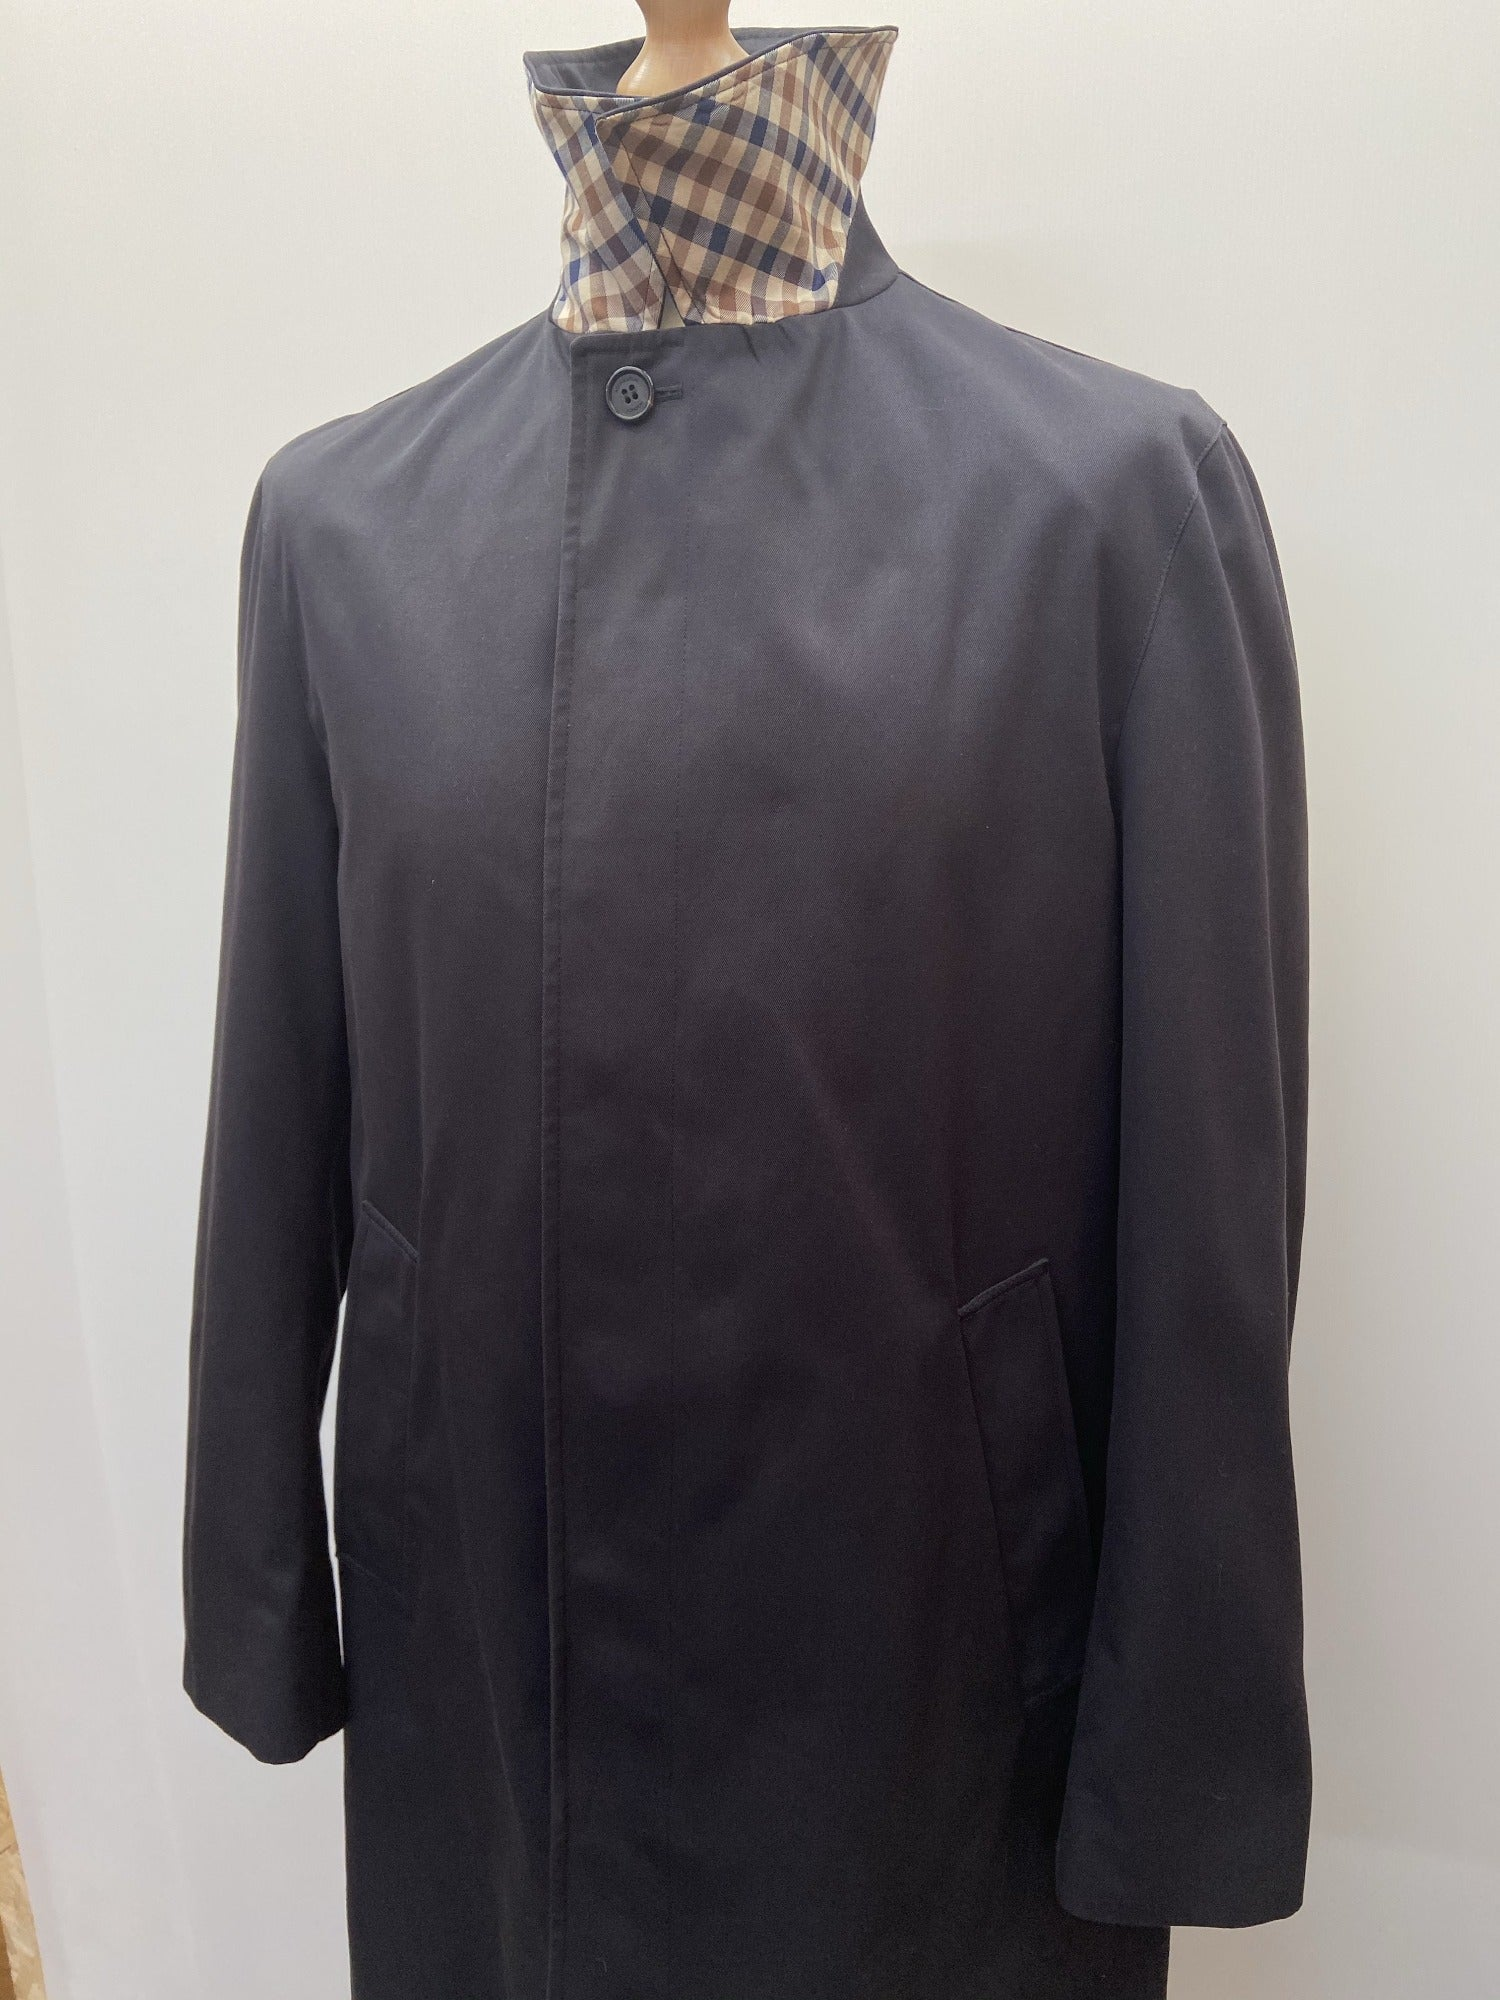 vintage  village  urban  trench  navy  mac  M  long  length  Jacket  club  check  blue  aquascutum  40  3/4